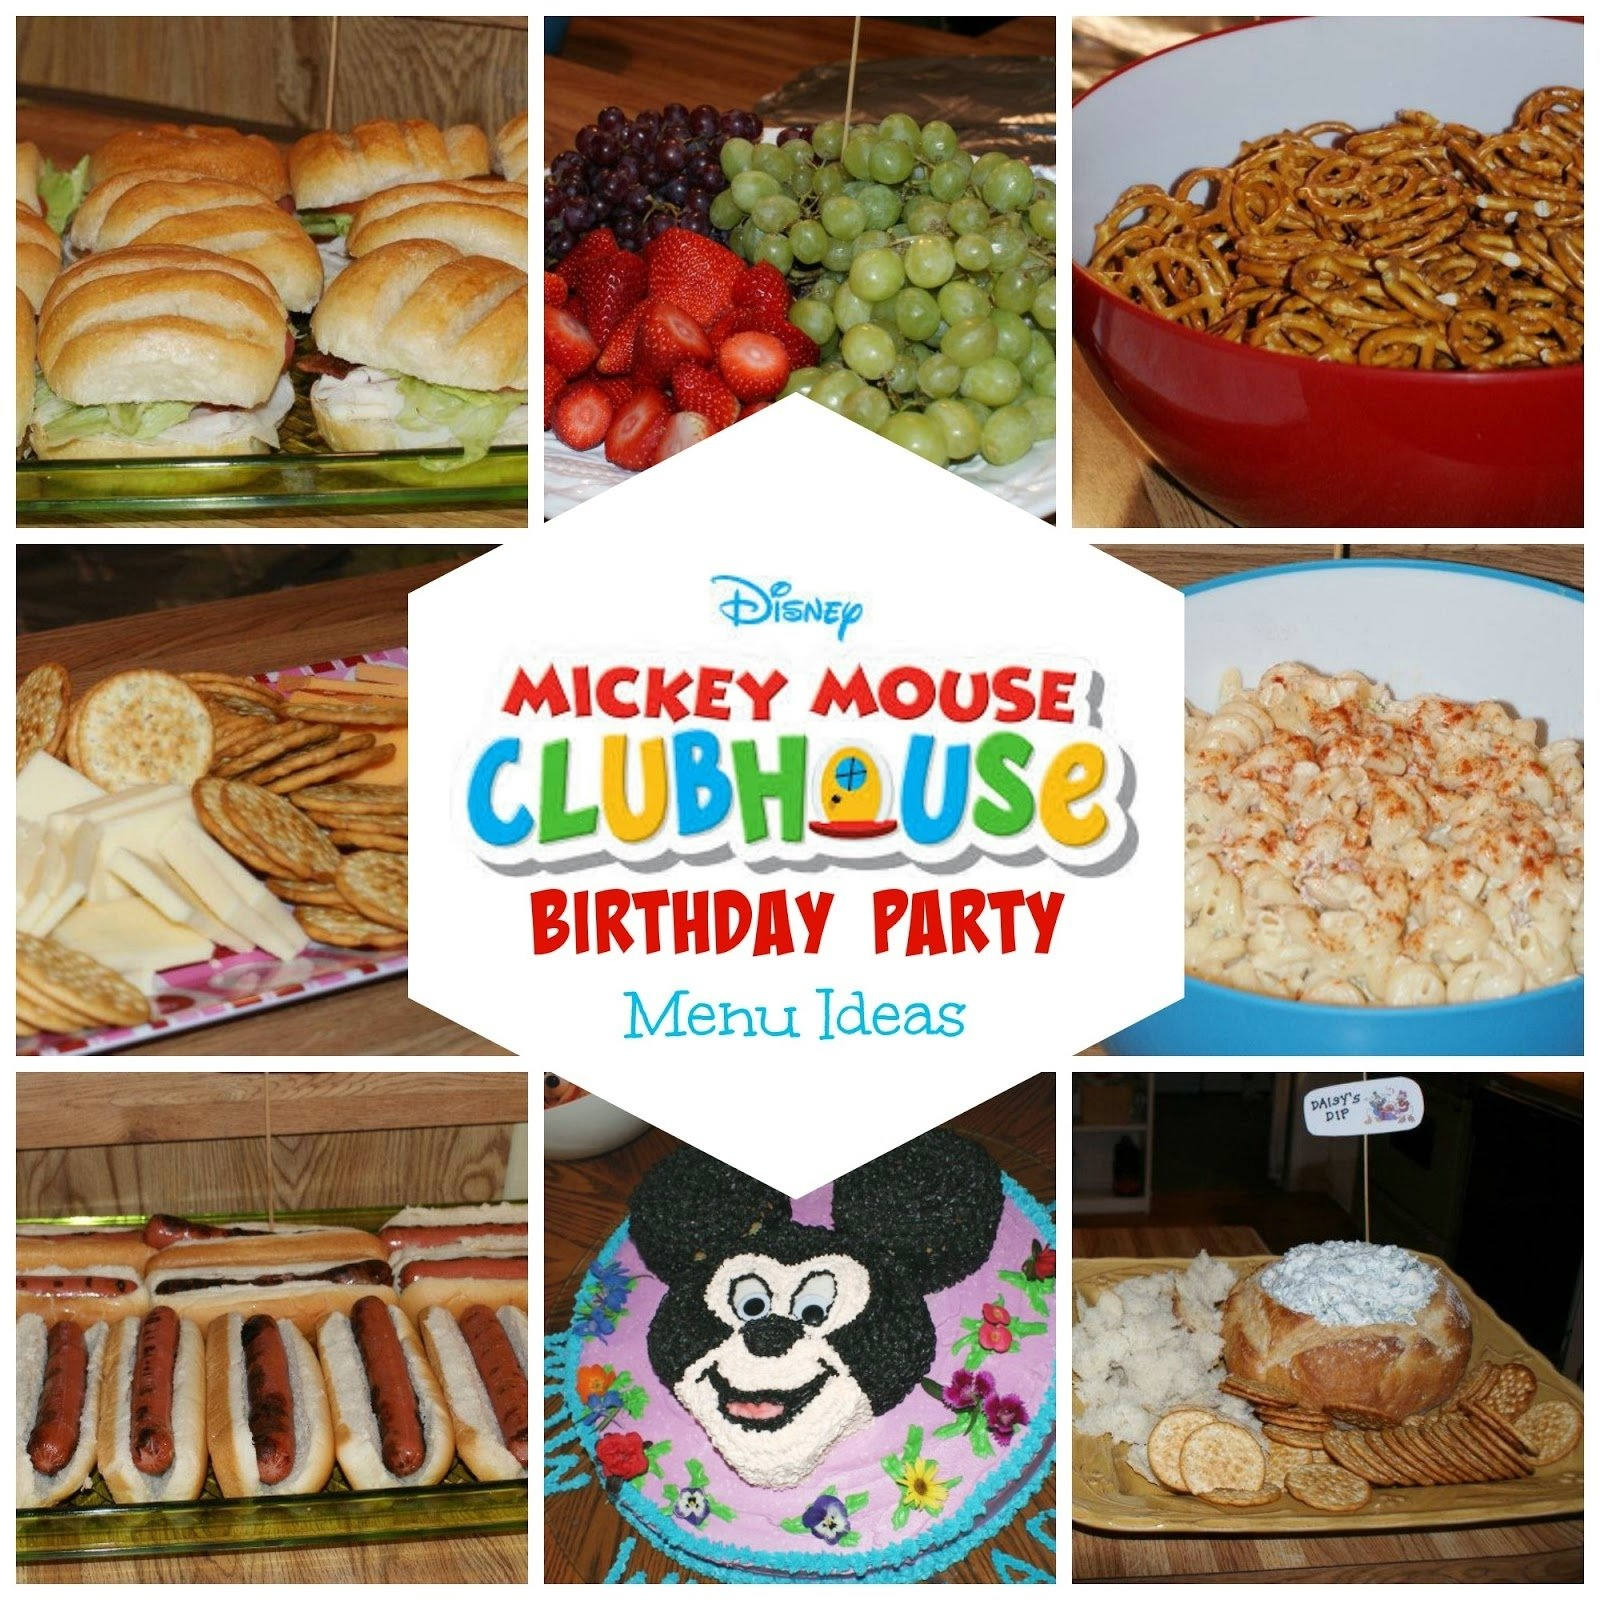 10 Ideal Mickey Mouse Birthday Party Food Ideas 8 mickey mouse birthday party menu ideas the two bite club 2 2020